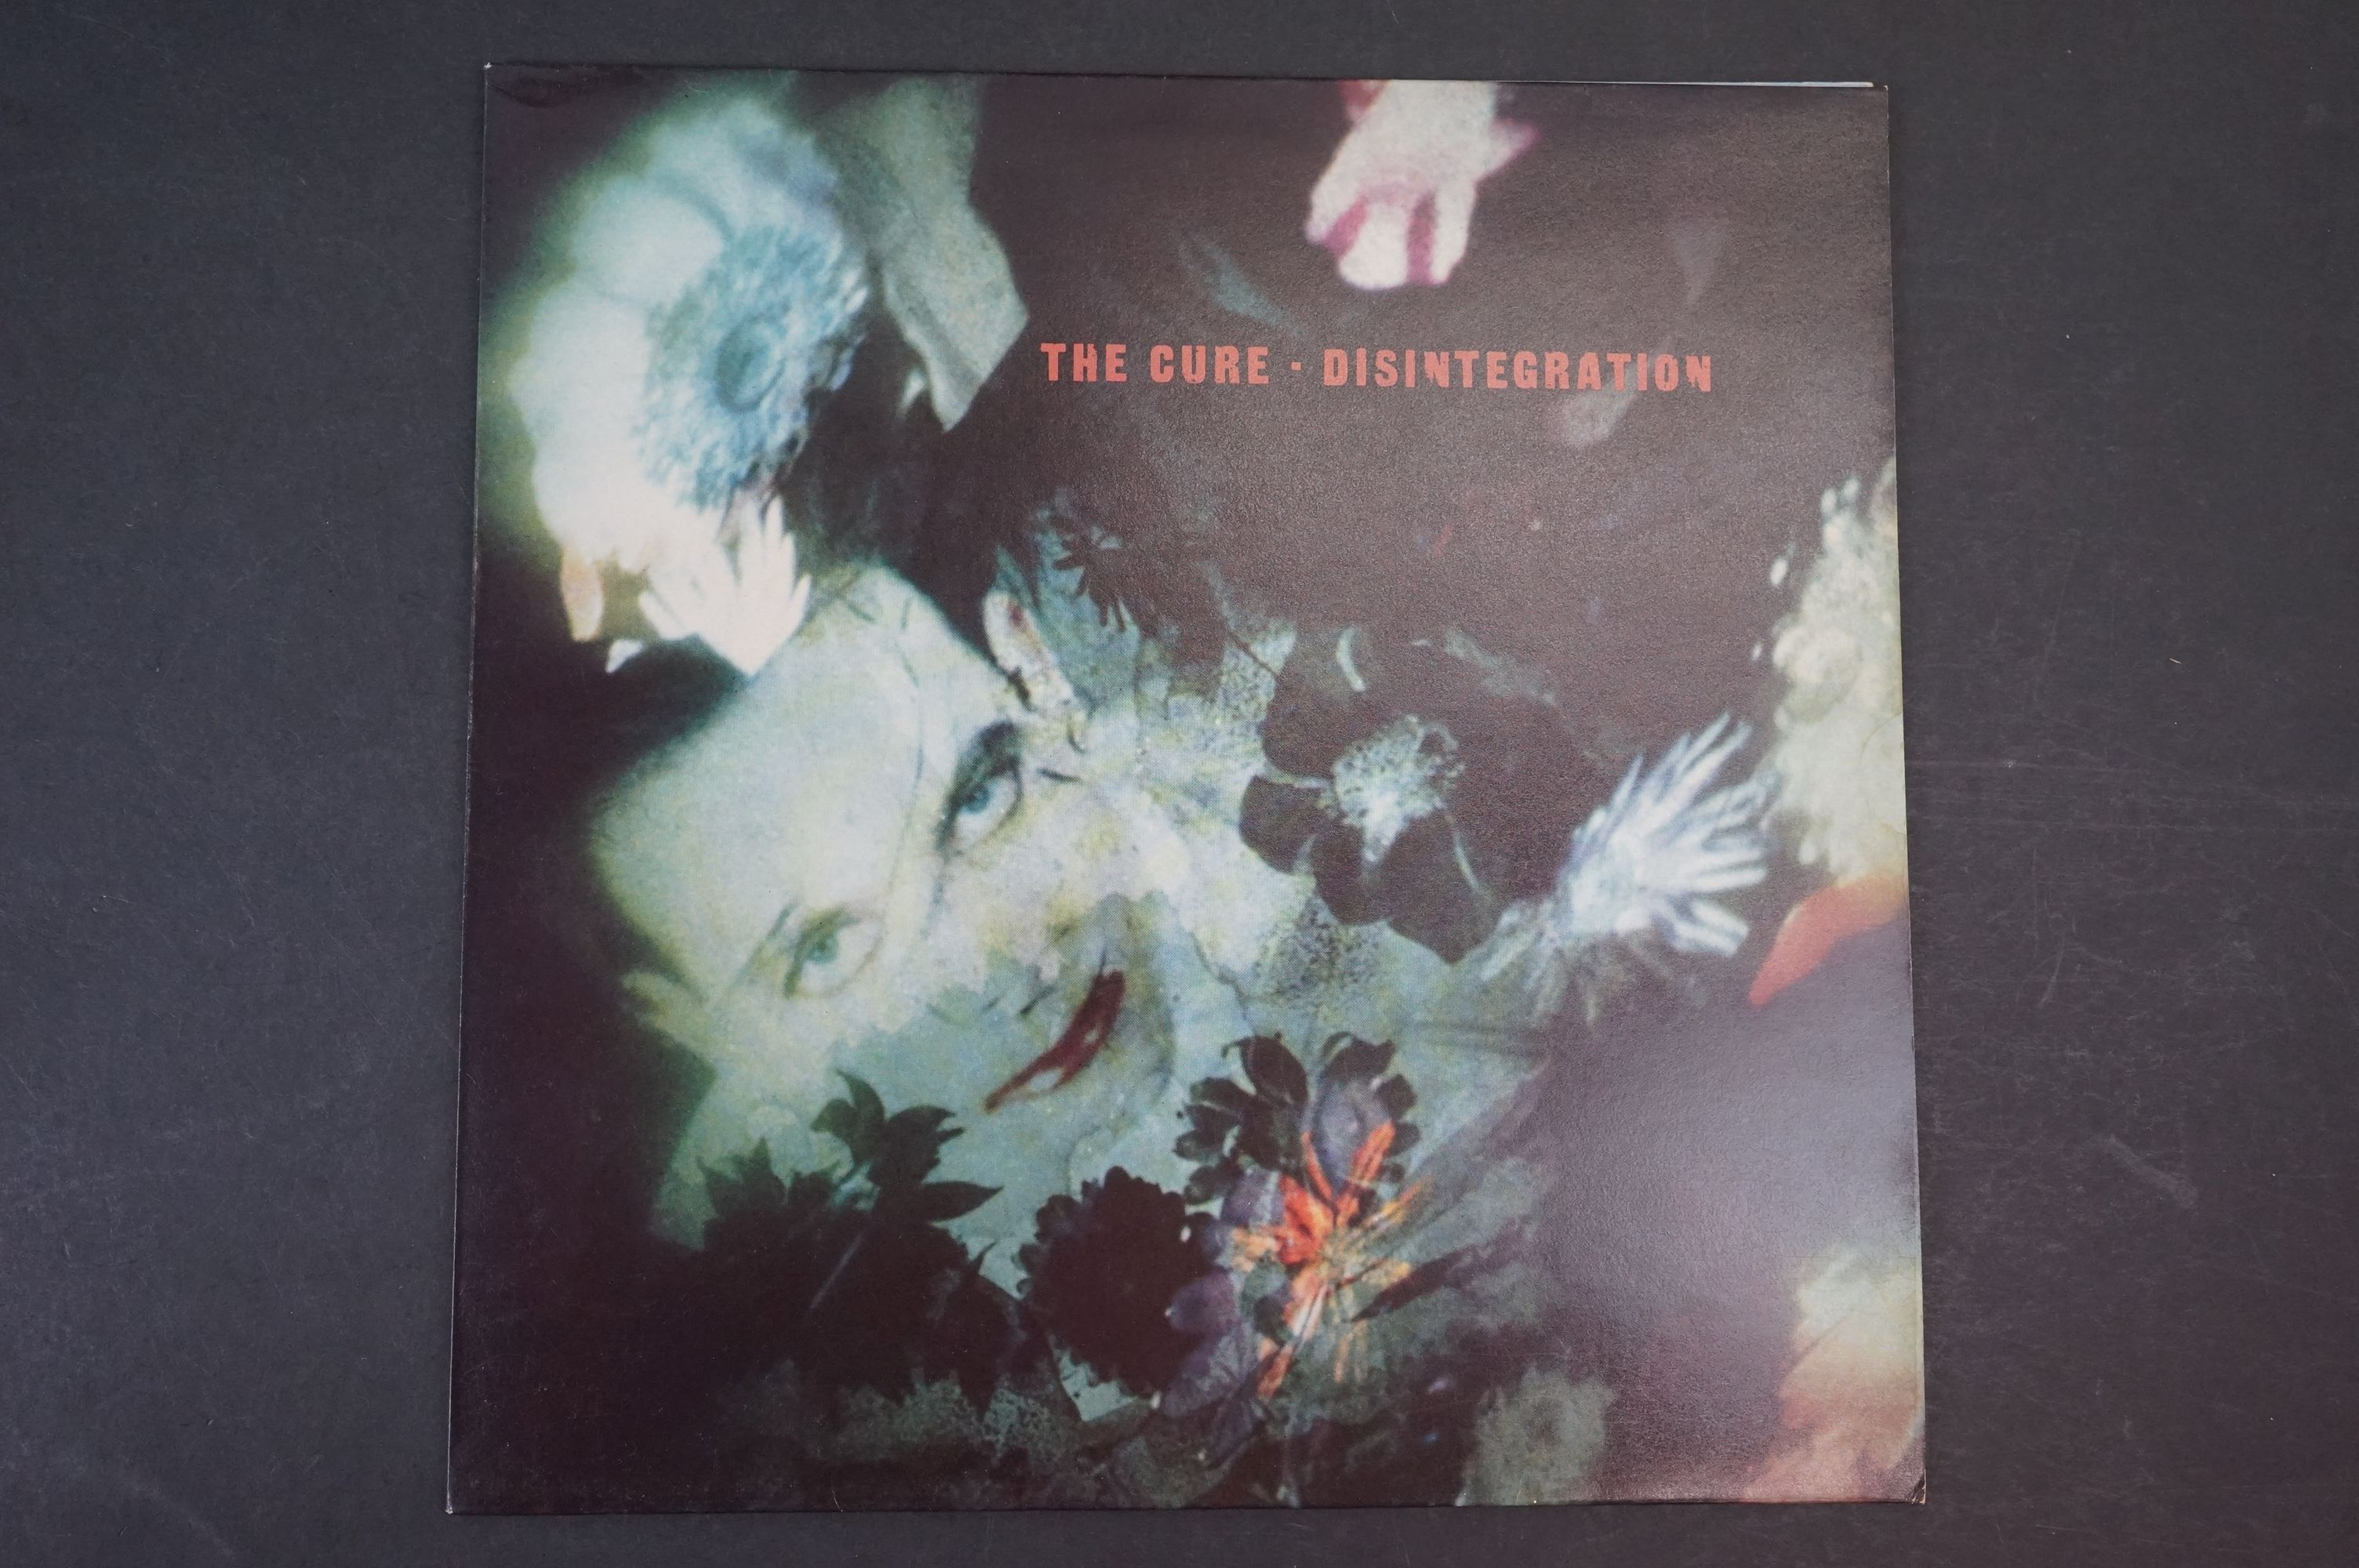 Vinyl - The Cure Disintegration LP on Fiction Records FIXH14 with inner, vg+ with light marks